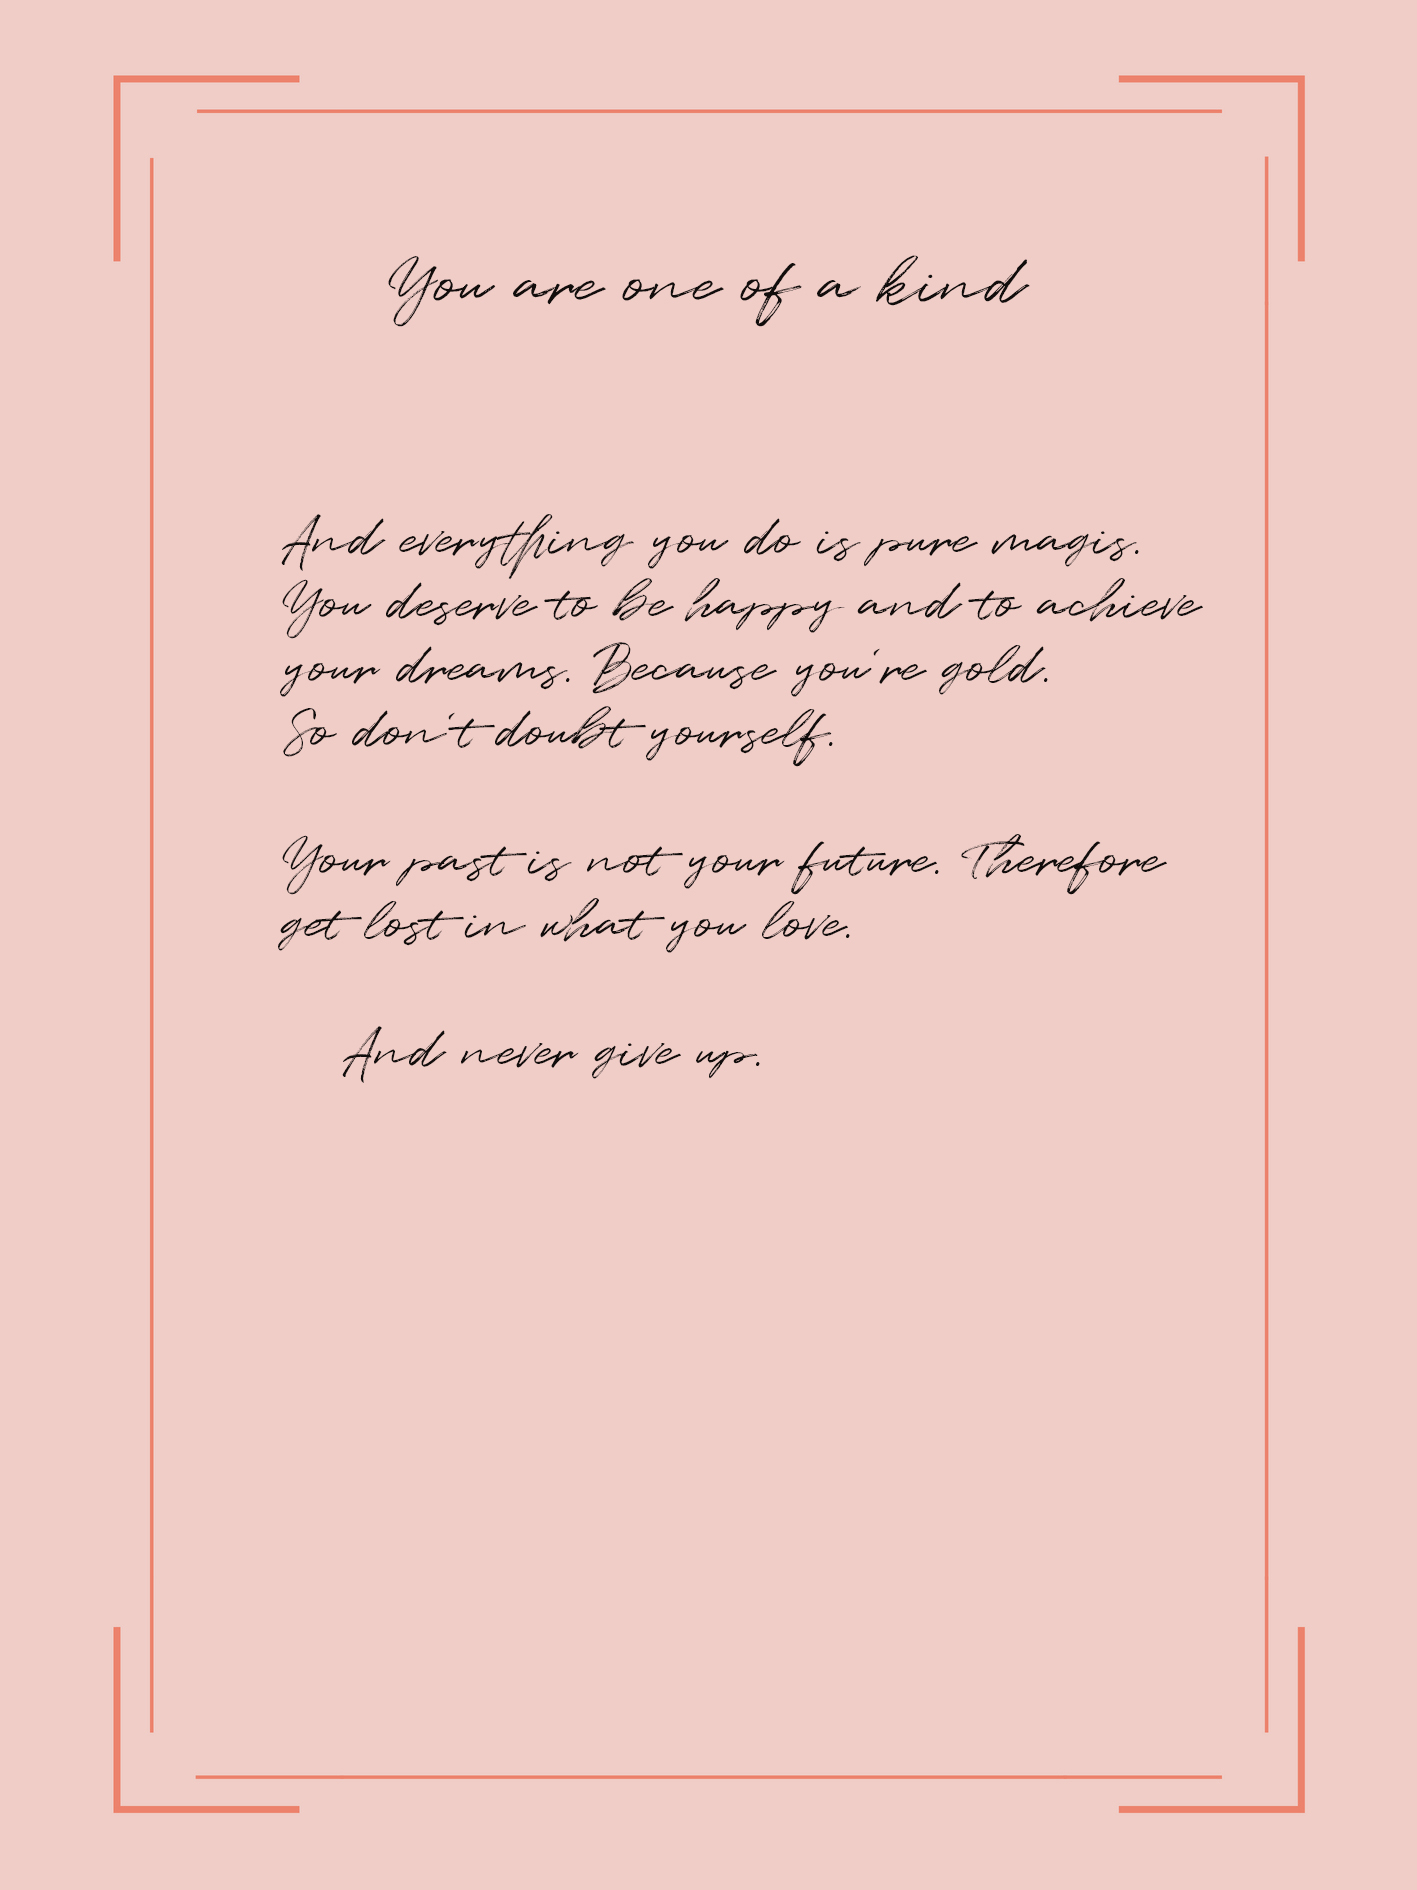 Self-love note |You are one of a kind